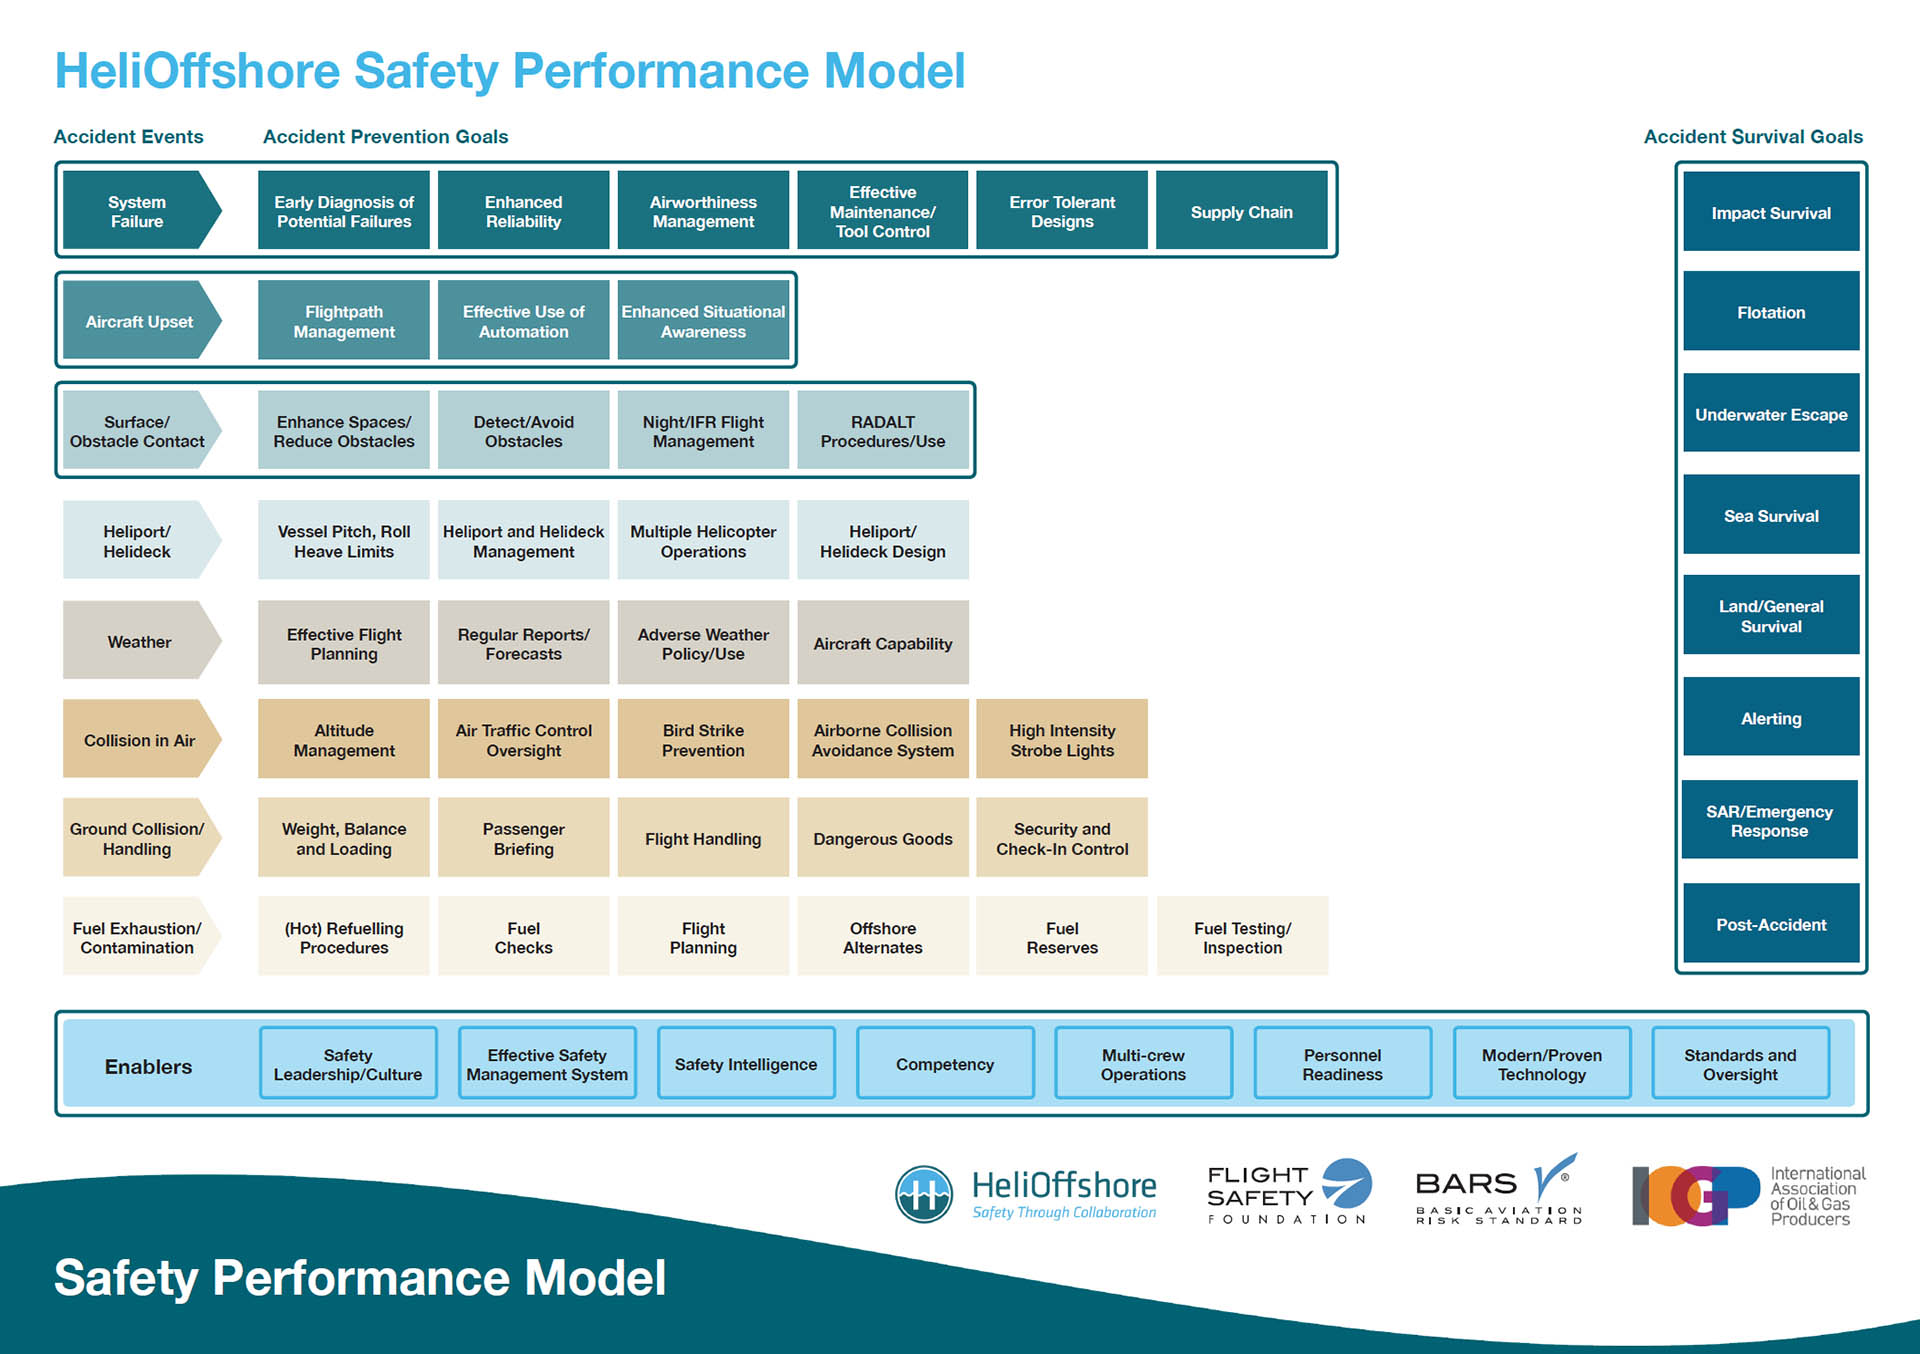 Heli Offshore Safety Performance Model